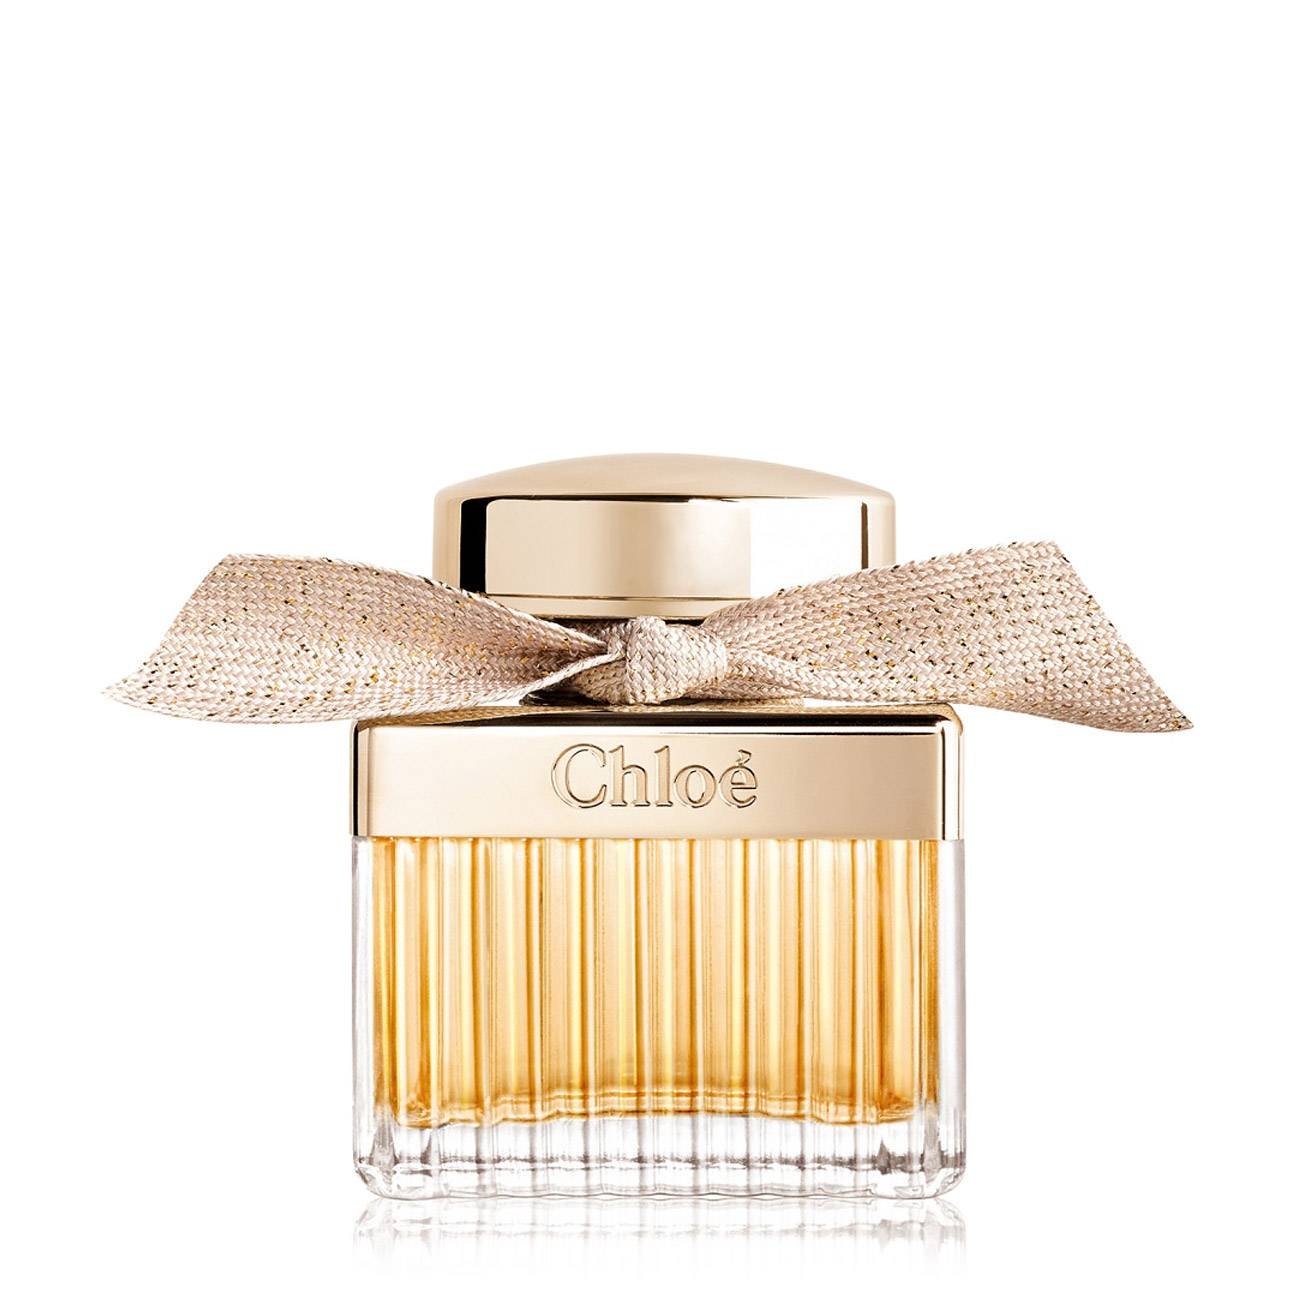 Chloe Absolu De Parfum 50ml imagine